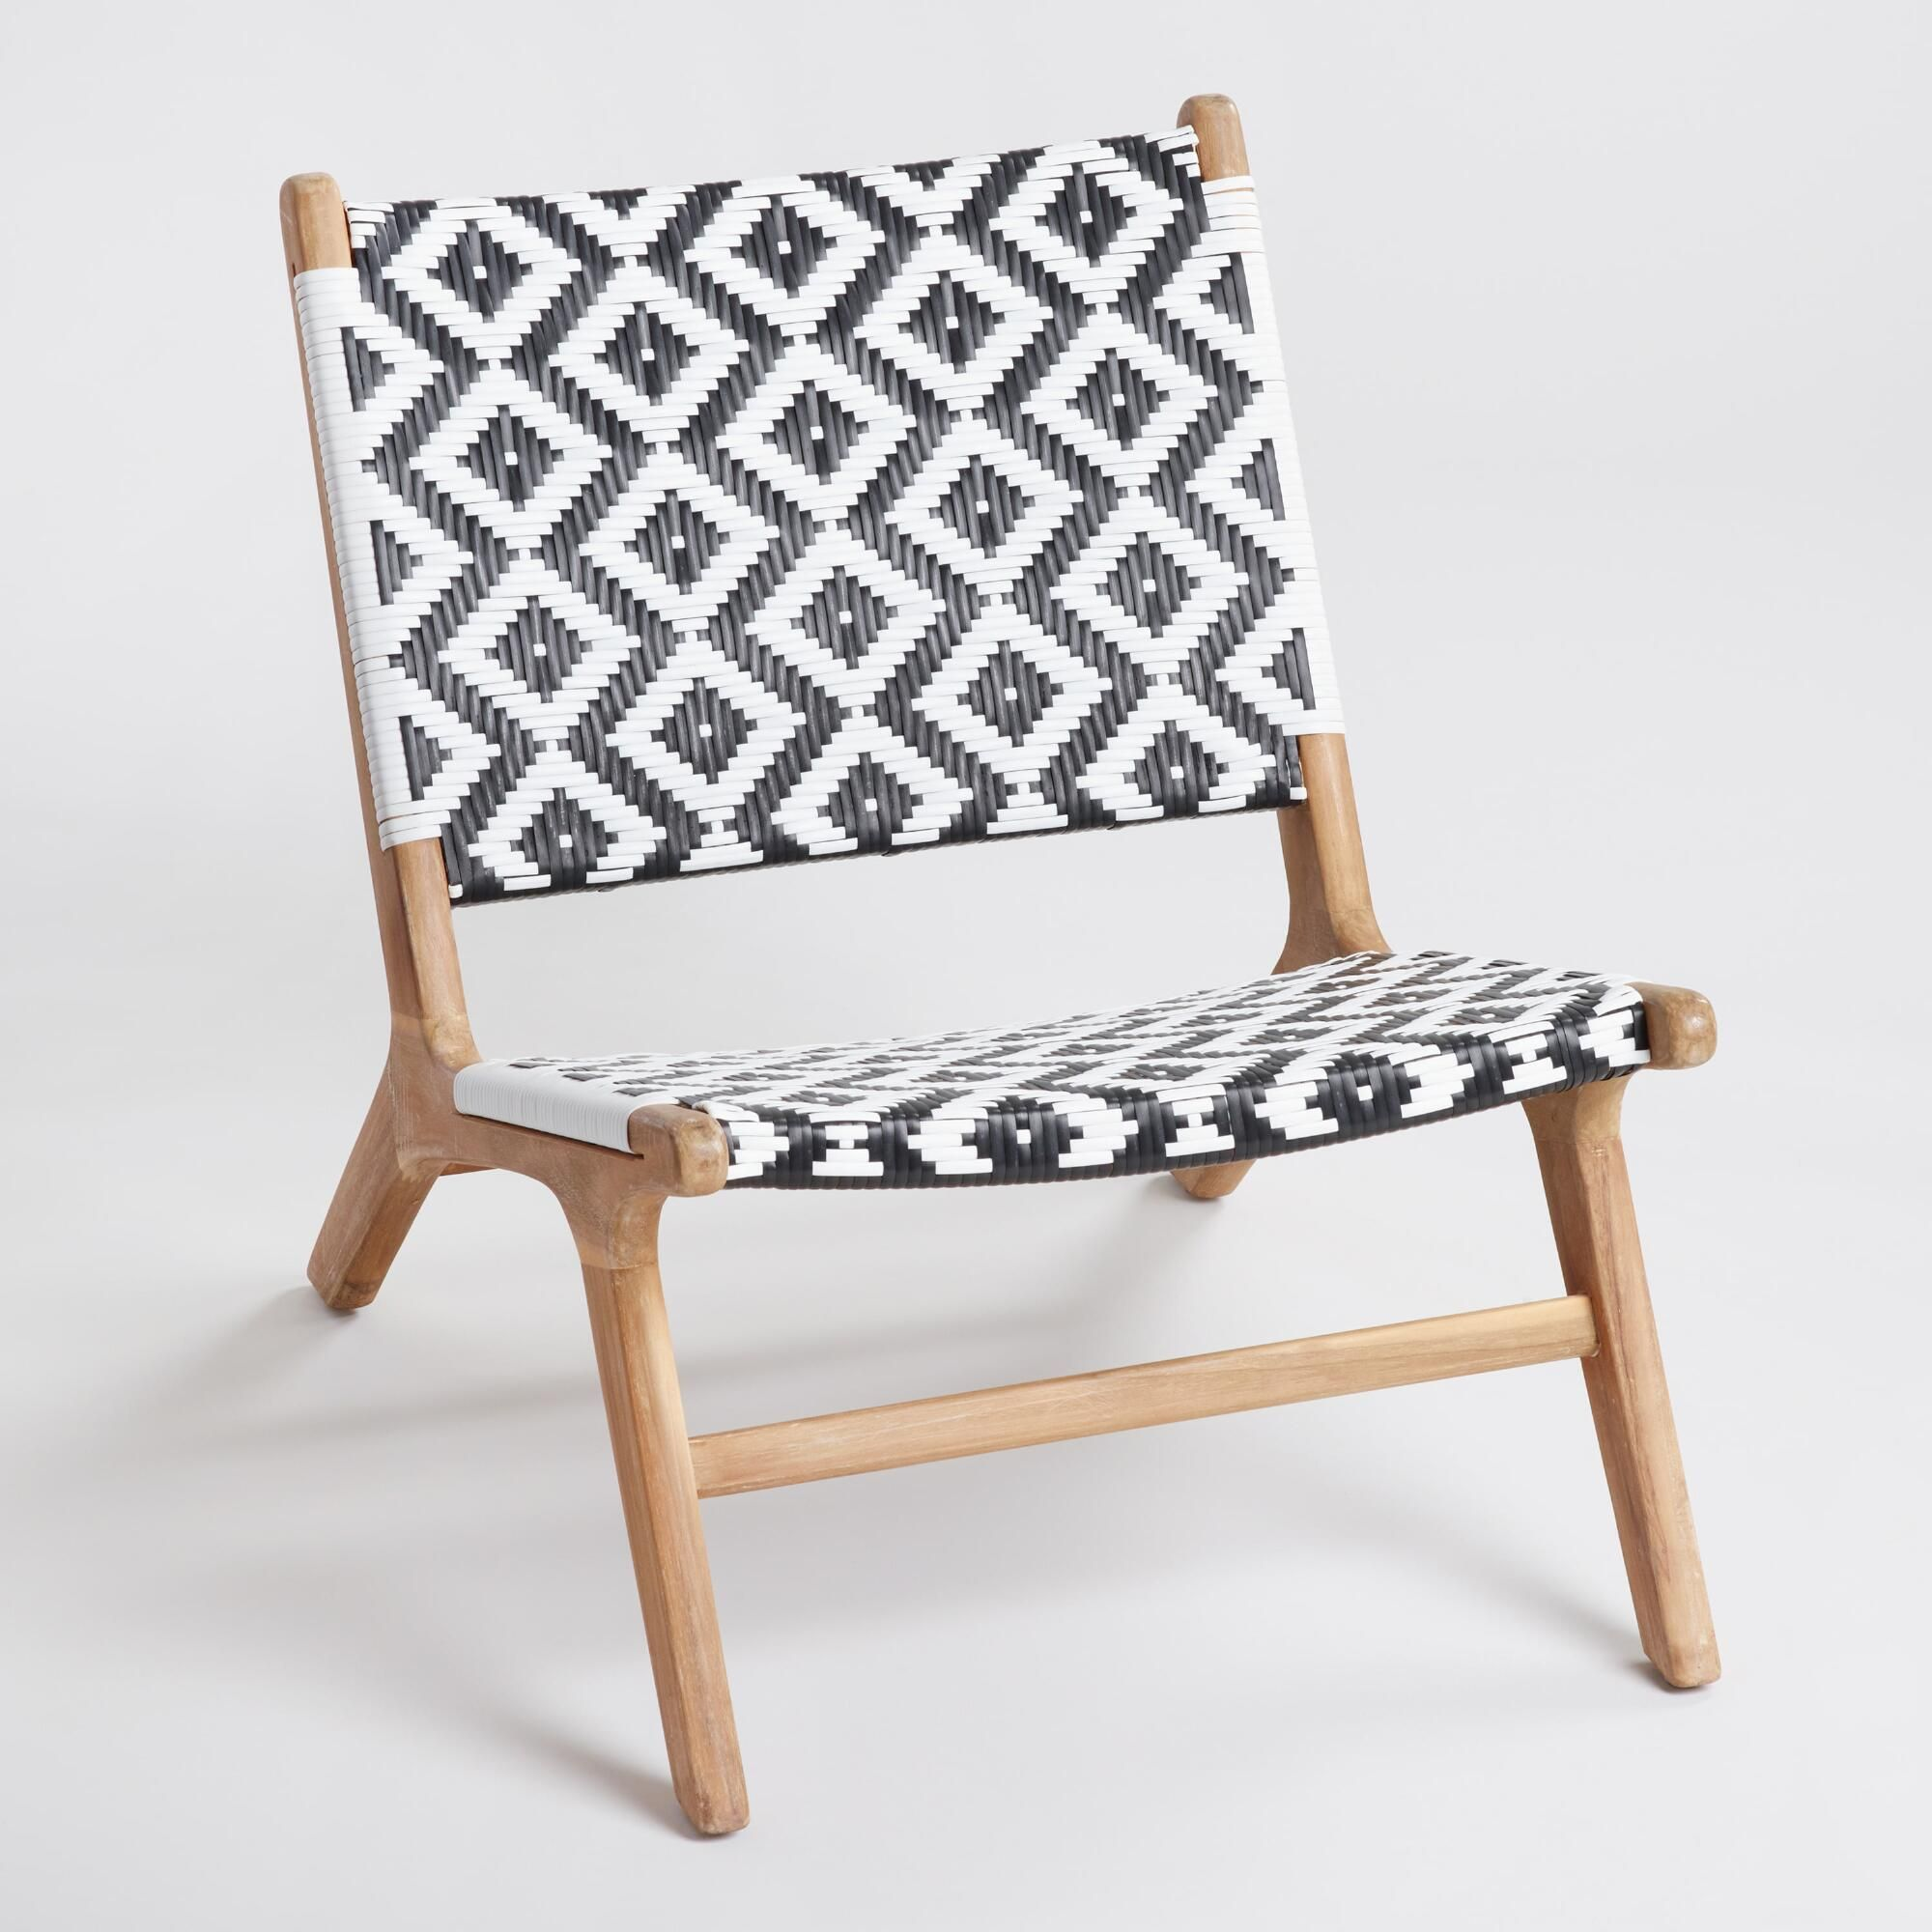 Super Black And White Strap Girona Outdoor Patio Accent Chairs Set Customarchery Wood Chair Design Ideas Customarcherynet